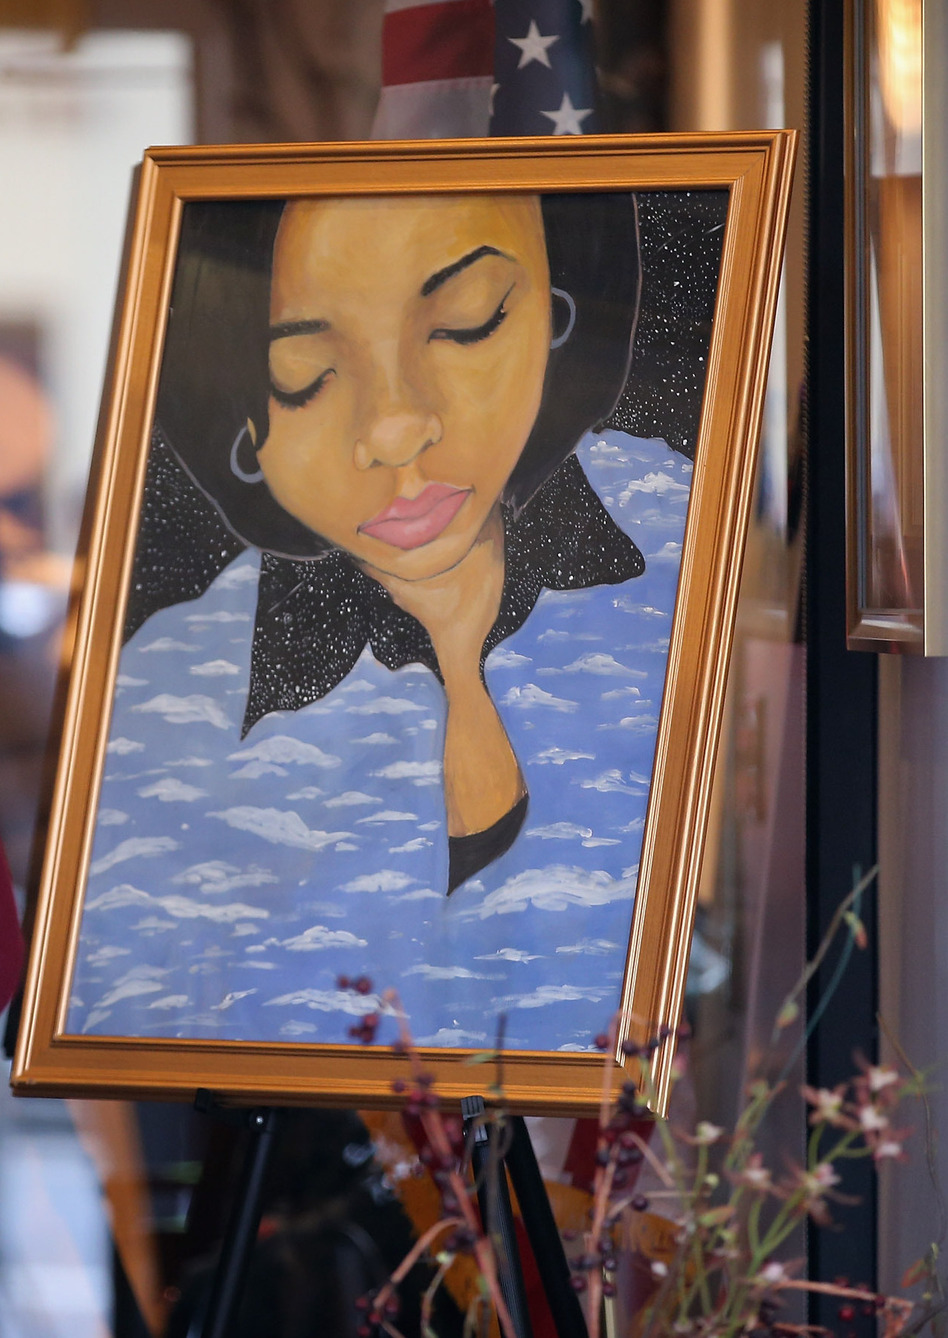 At a Chicago funeral home last week, a painting of 15-year-old shooting victim Hadiya Pendleton stood at the entrance.